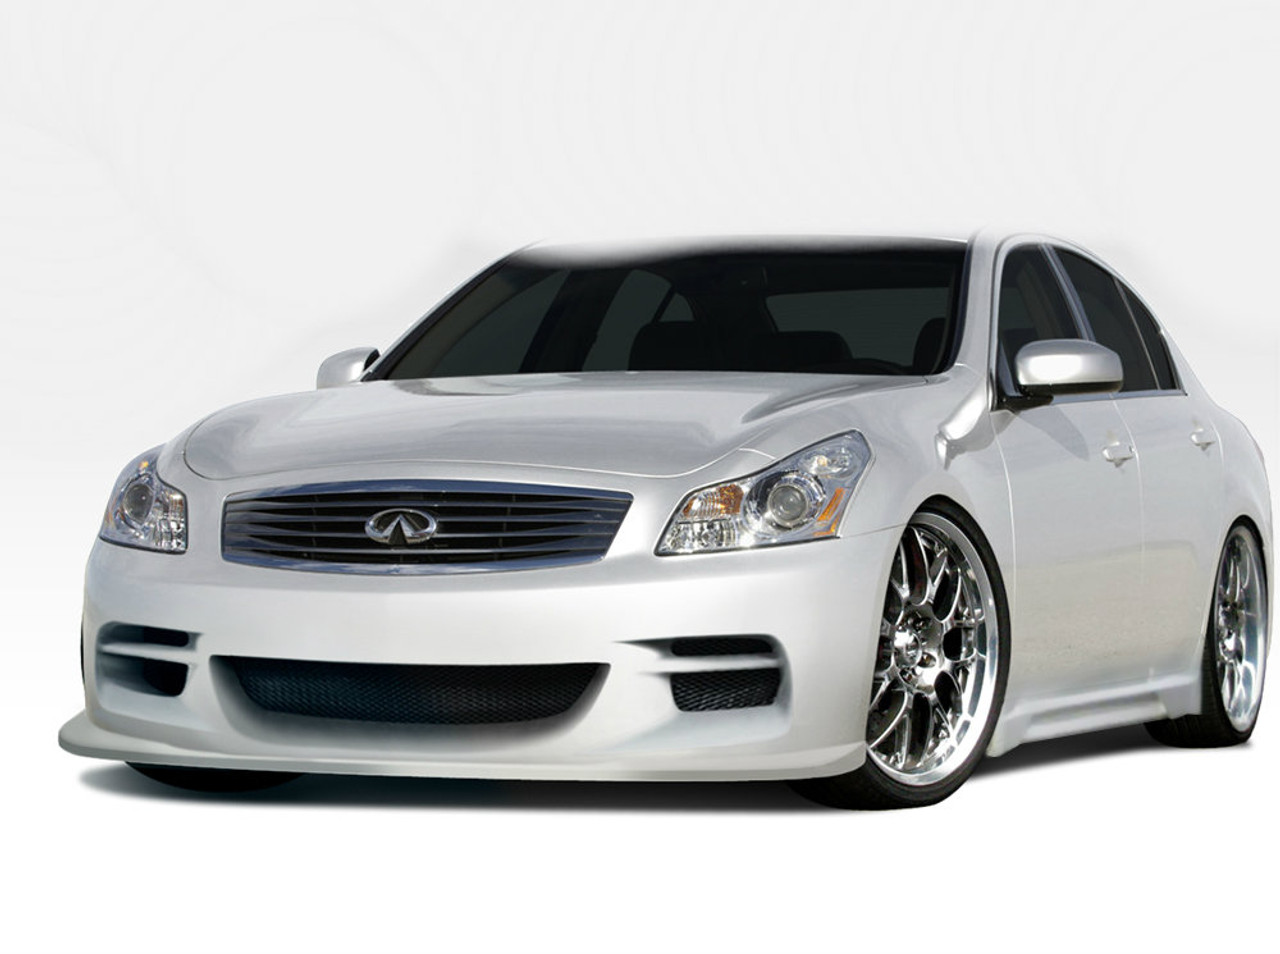 Free Shipping On Duraflex 07 09 Infiniti 4dr G25 G35 G37 Ts 1 Body Kit